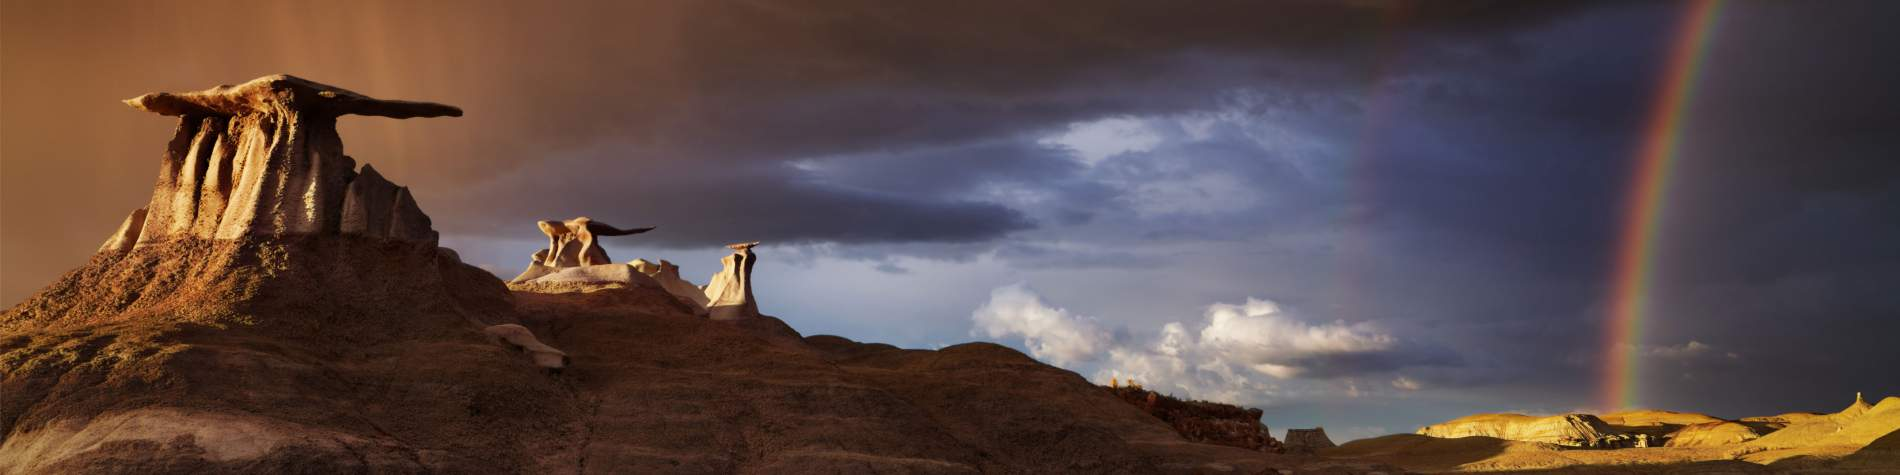 Storm and rainbow at Bisti Badlands in New Mexico